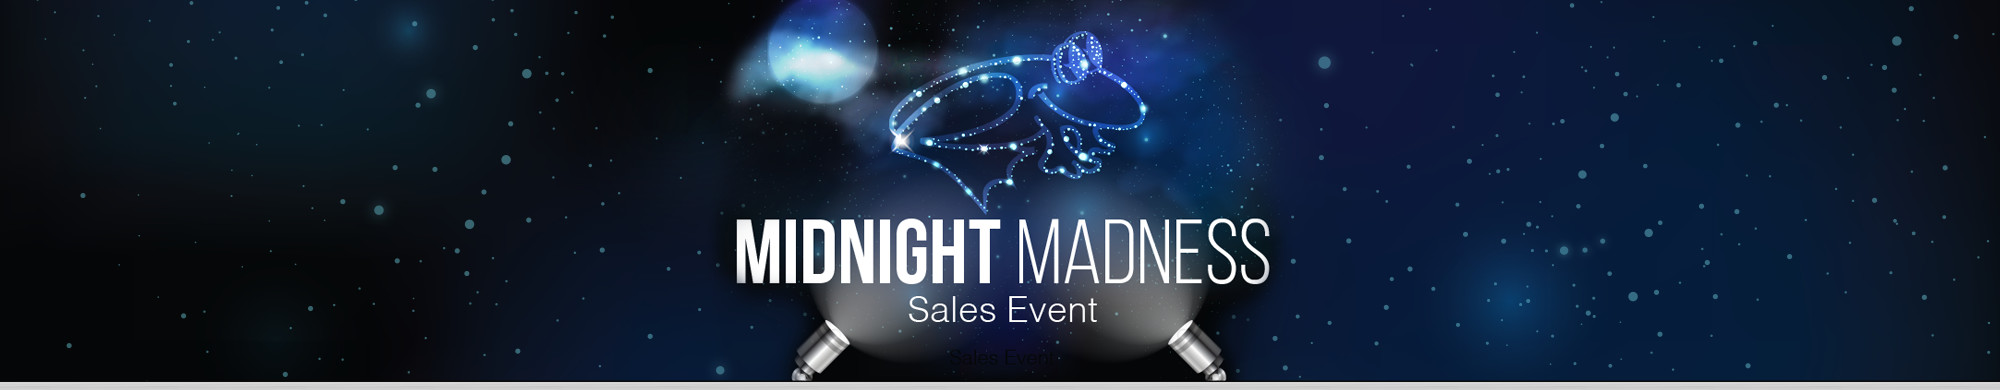 Midnight Madness Sales Event